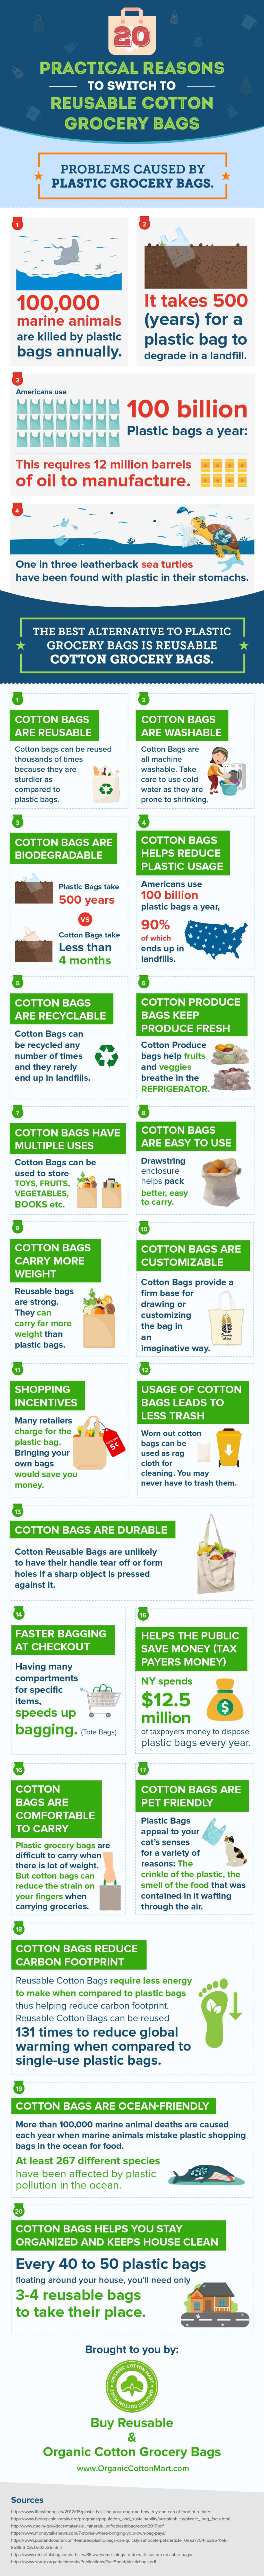 Switch to Reusable Cotton Grocery Bags: 20 Strong Reasons Why - Infographic